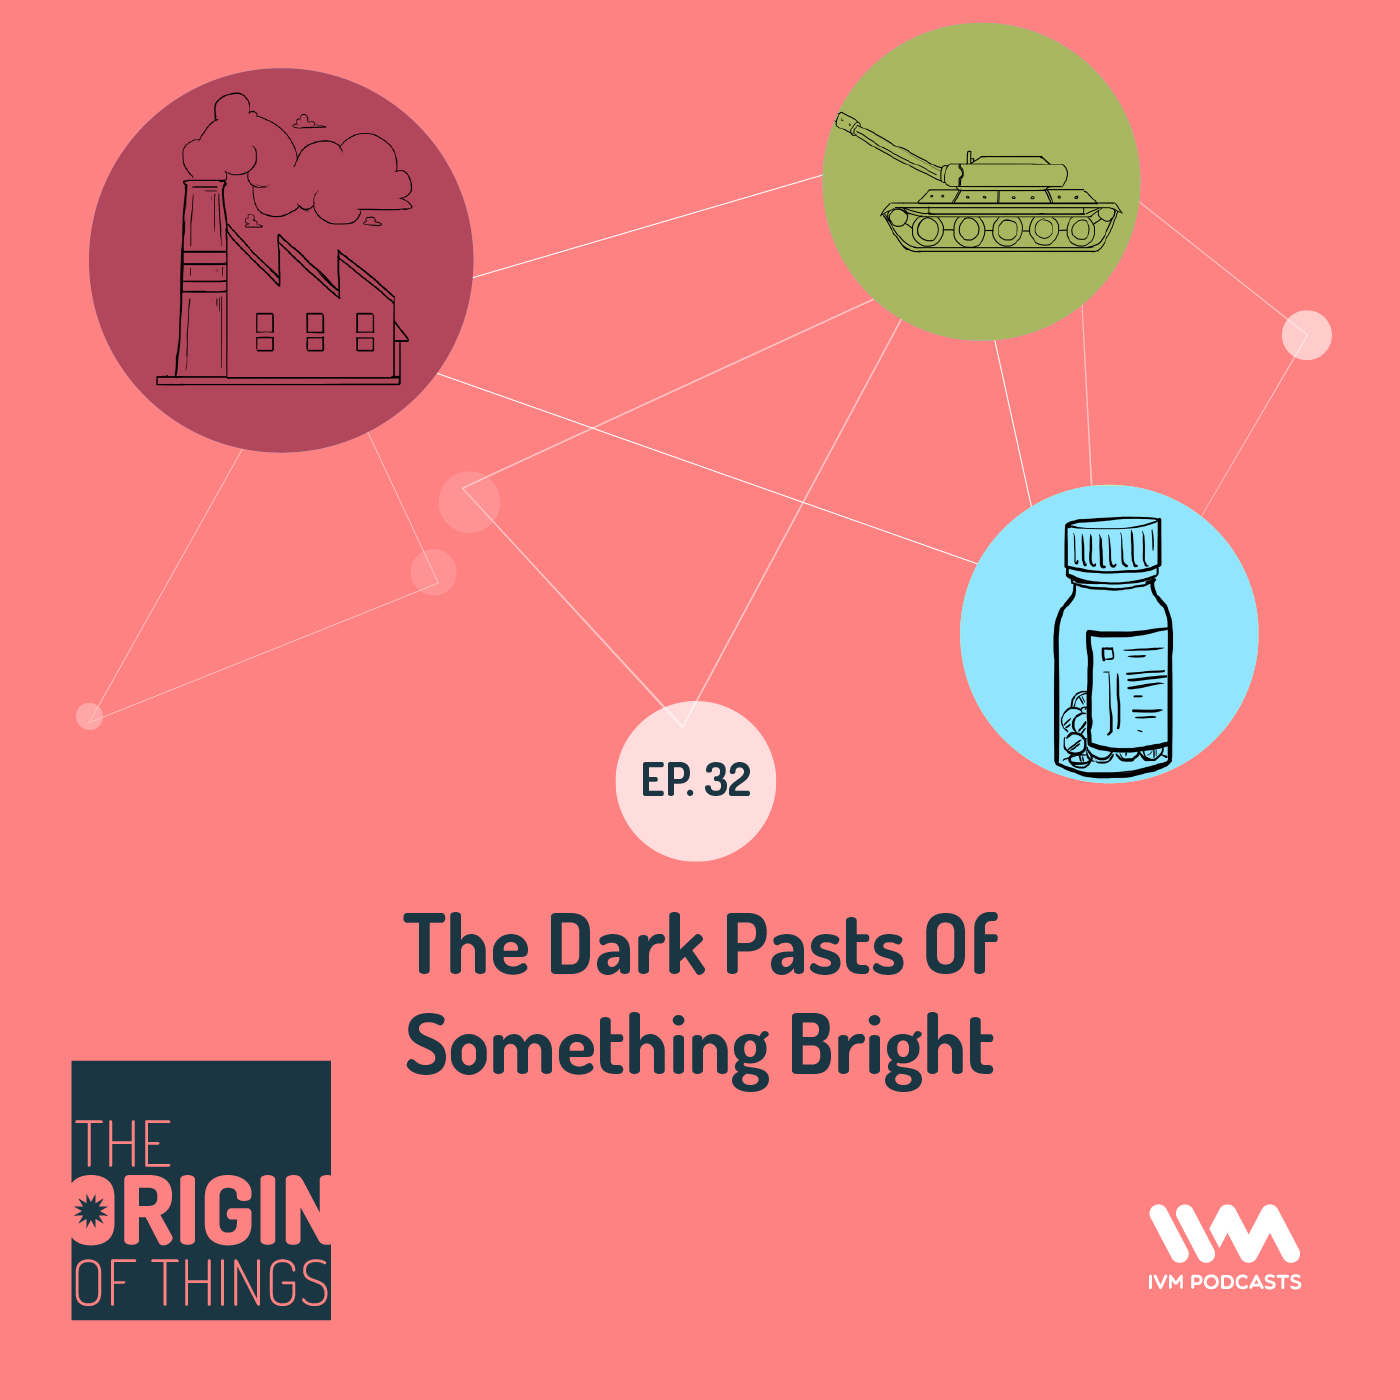 Ep. 32: The Dark Pasts Of Something Bright